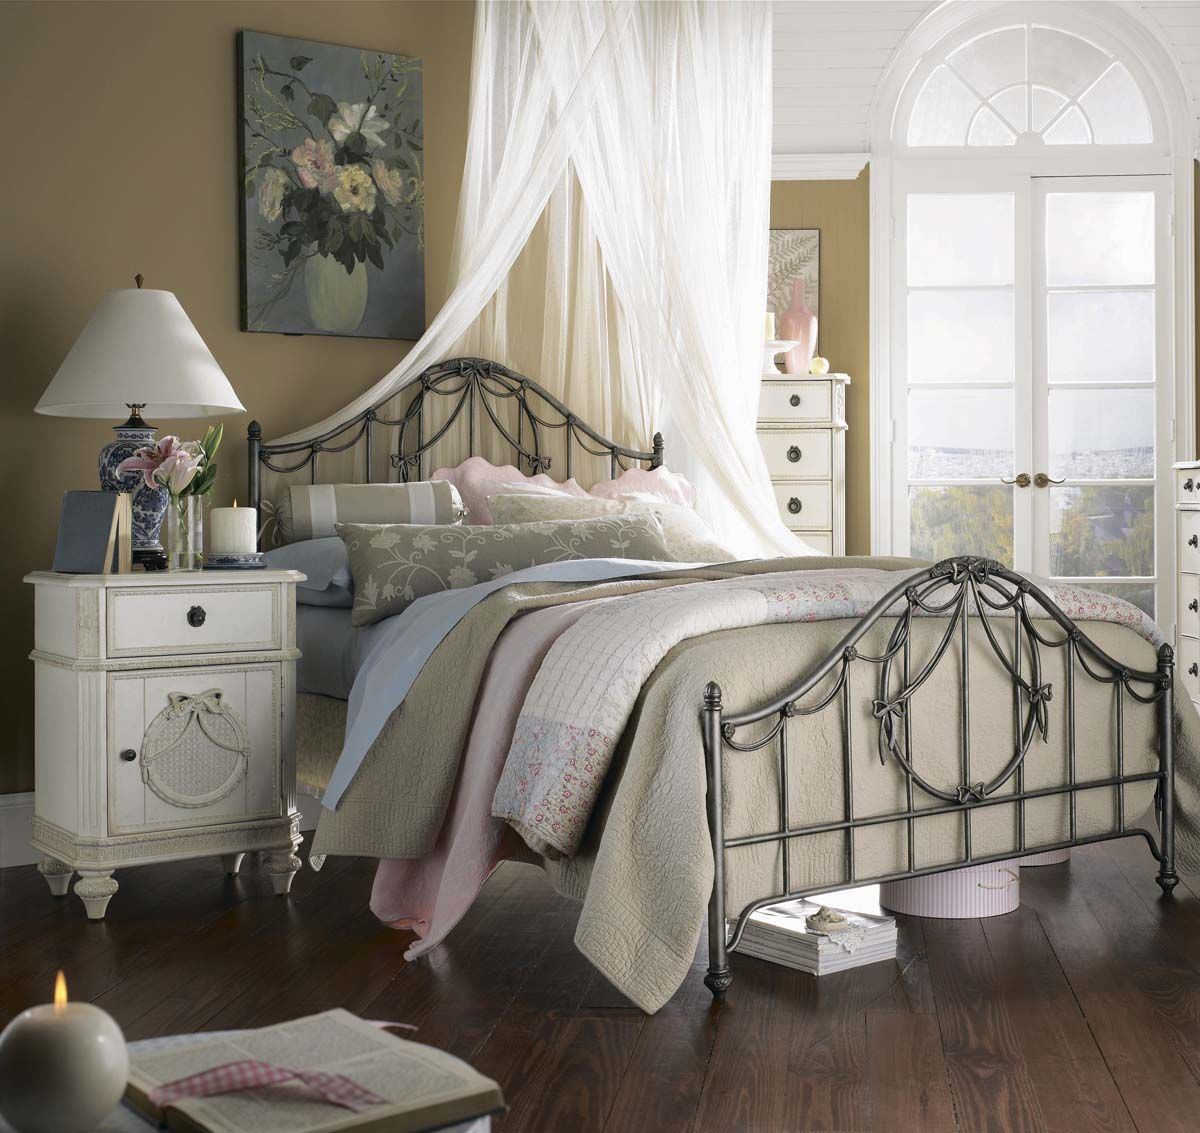 Bedroom Designs Vintage 5 vintage bedroom sets ideas for 2015 | vintage bedrooms, bedrooms